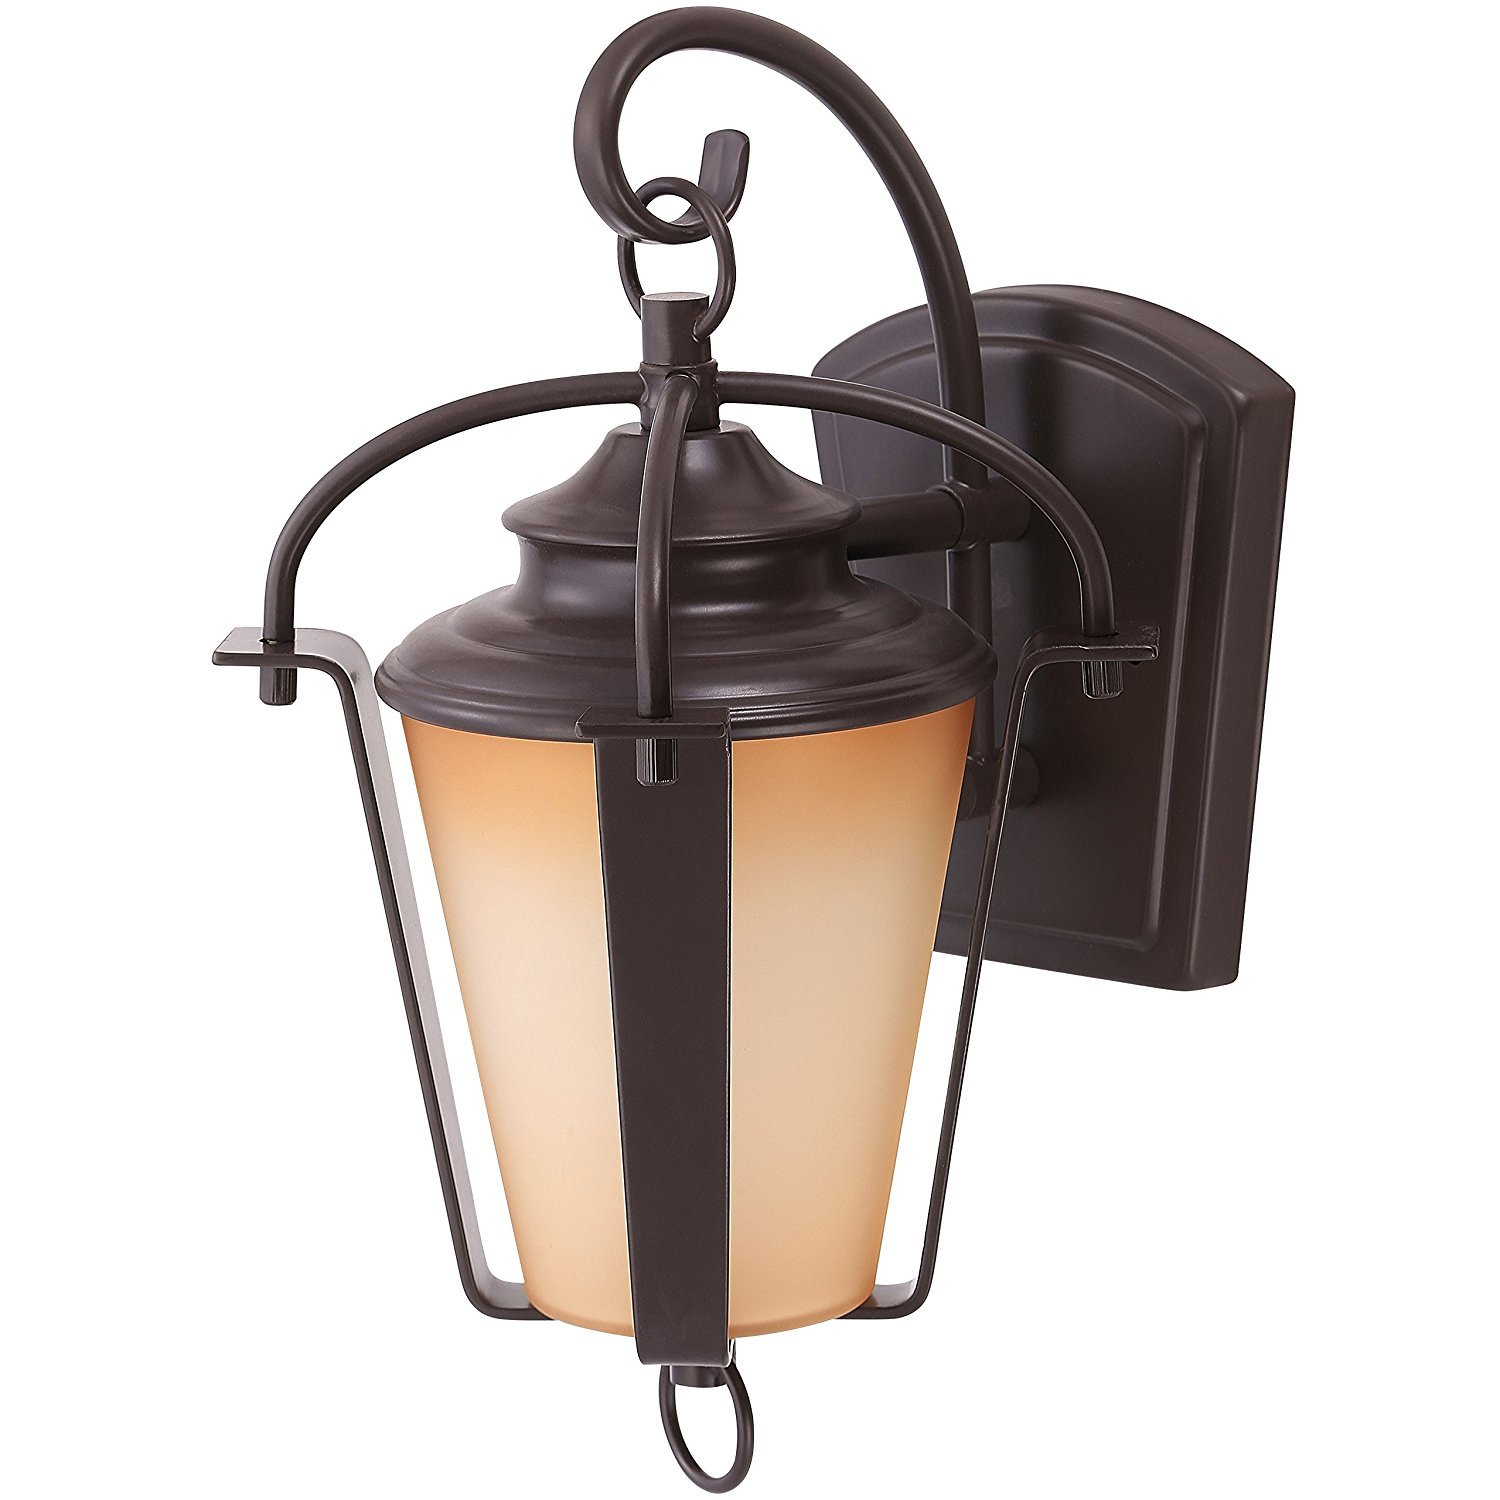 LB75230 LED 15W Outdoor Wall Lantern, 16'' Oil Rubbed Bronze with Amber Alabaster Glass, (75W Replacement) 3000K Warm White, 500 Lumens, Waterproof and Outdoor Rated, ETL-Listed